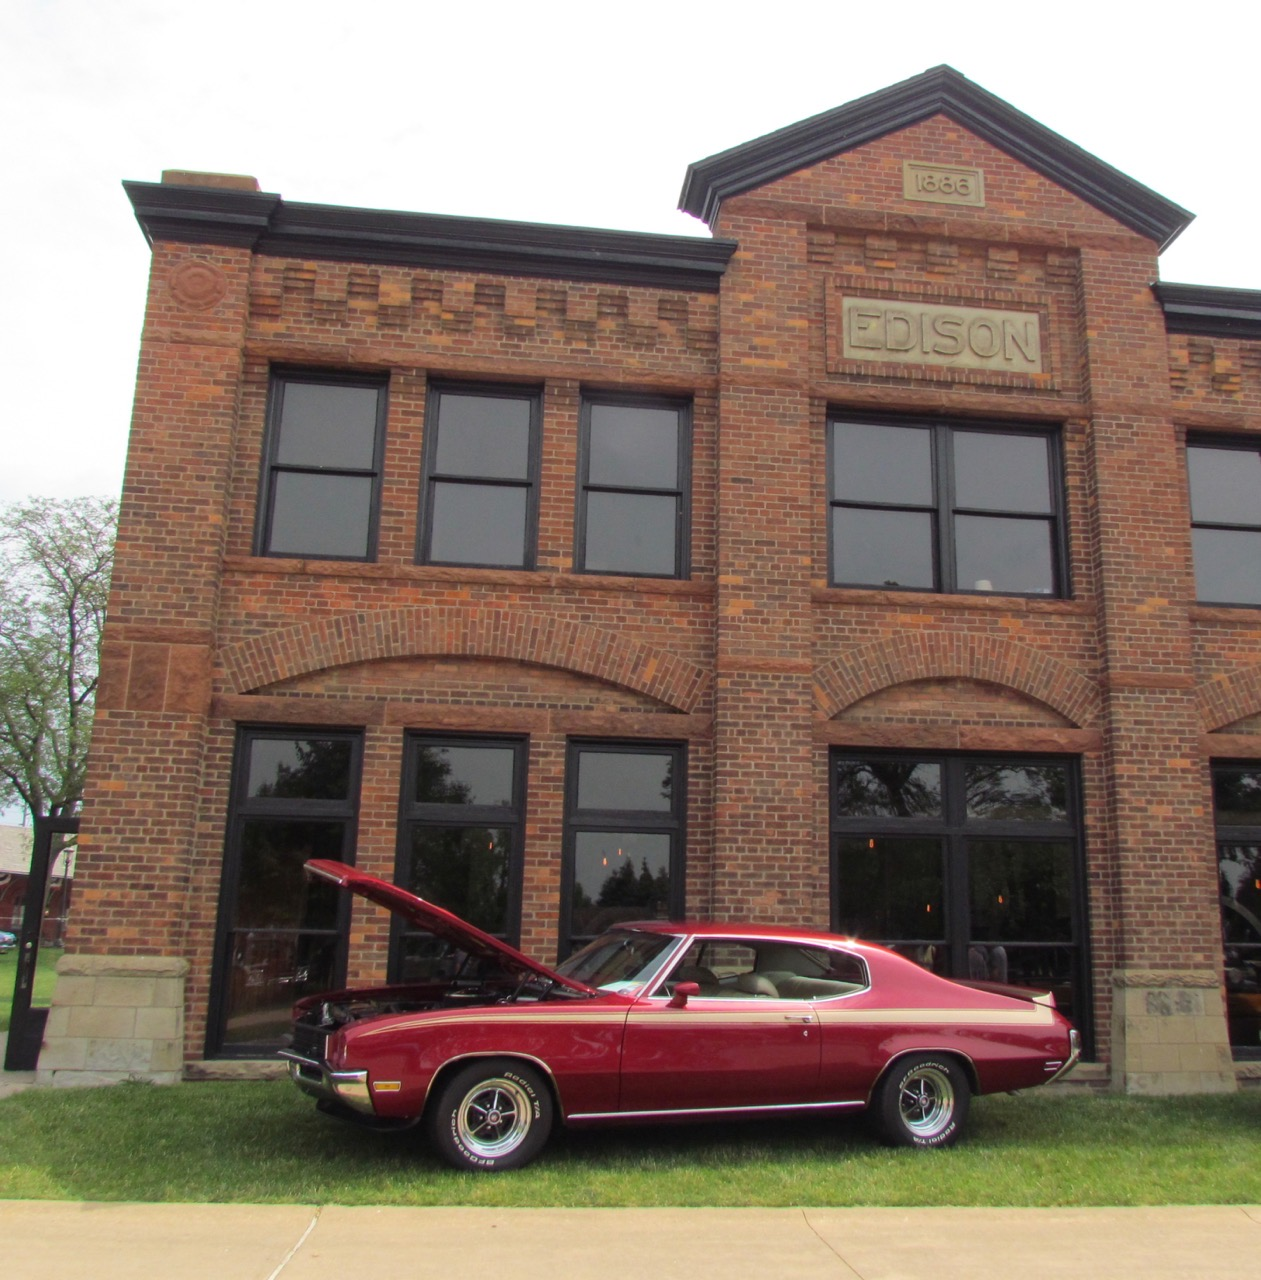 A 1972 Buick Skylark in front of the historic Edison powerhouse